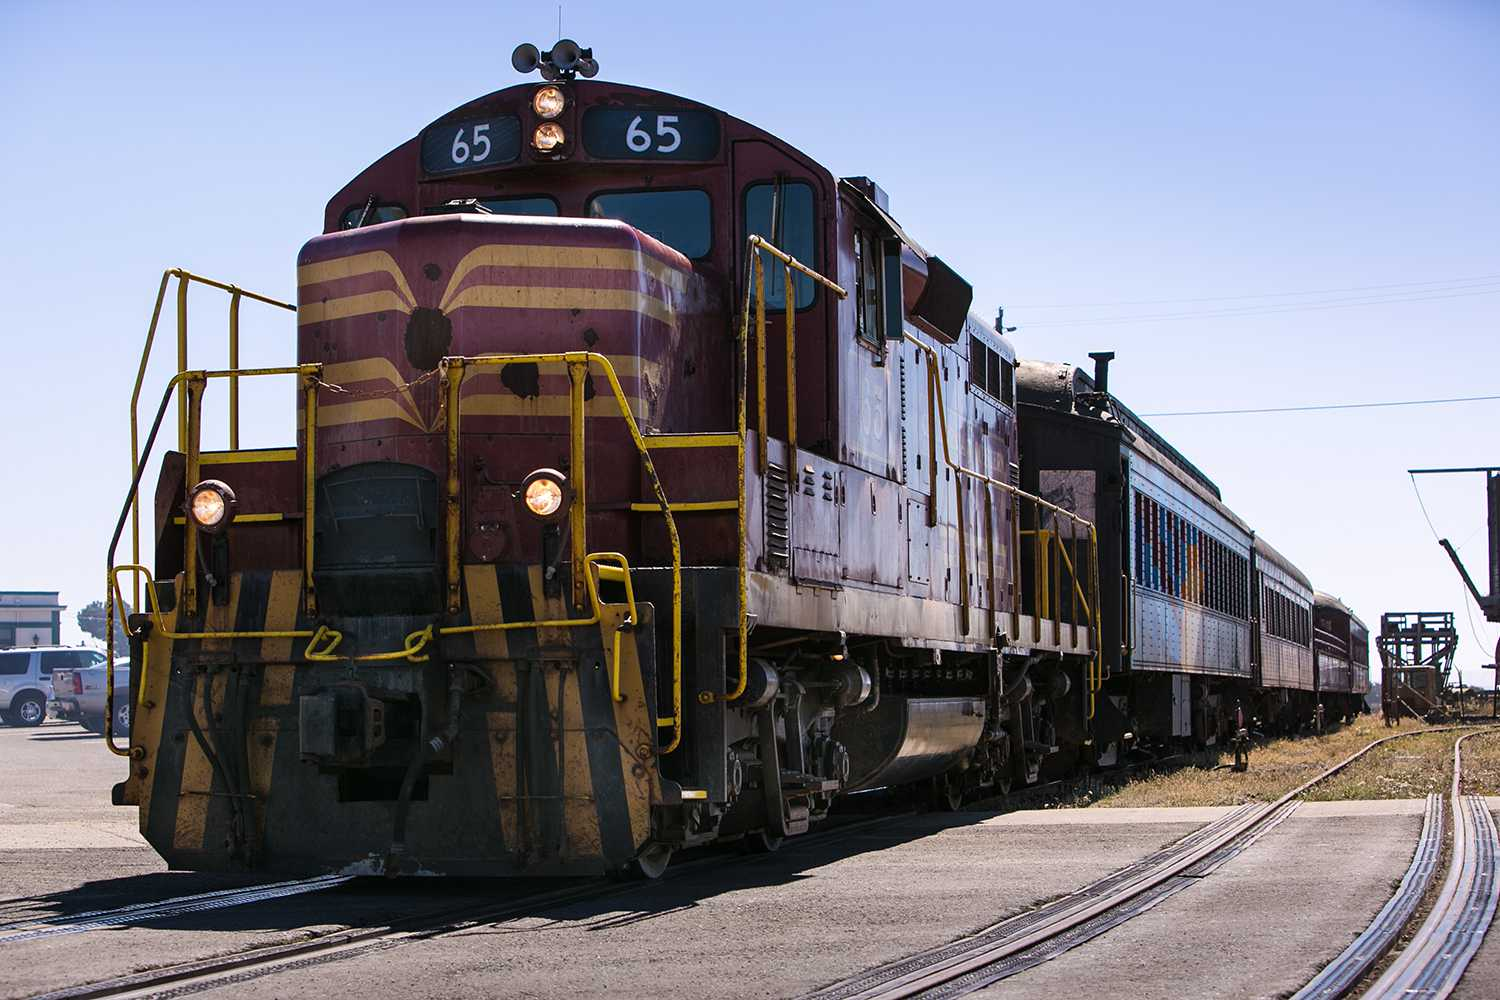 The California Western 'Skunk Train' pulls away from the station on September 6, 2013, in Fort Bragg, California.